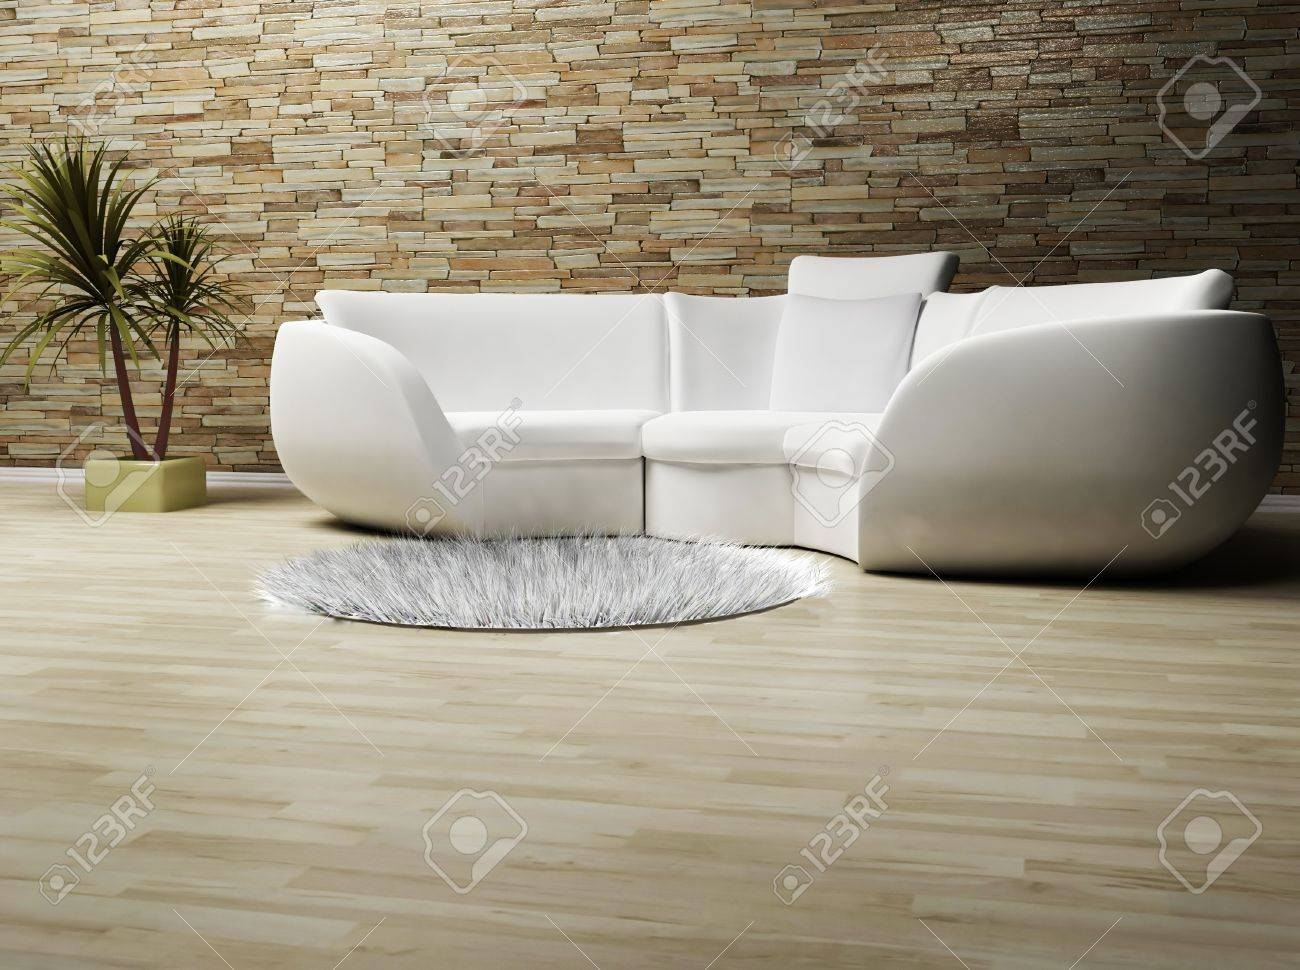 Modern Interieur Wit : This is a modern interior wit a sofa a carpet and a plant stock